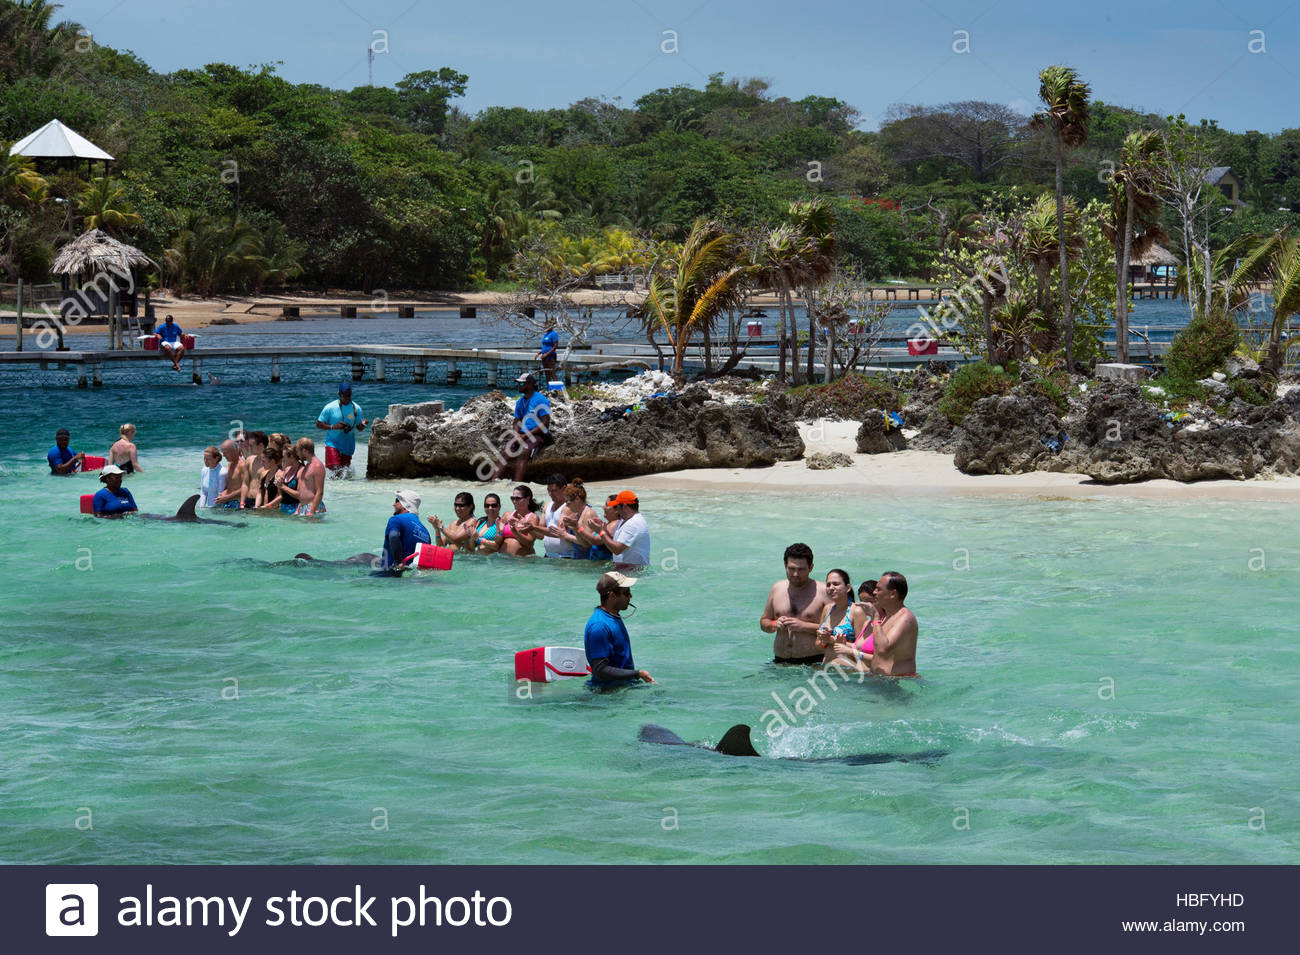 Tourists interact with a bottlenose dolphin at the Roatan Institute for Marine Science at Anthony's Key Resort - Stock Image